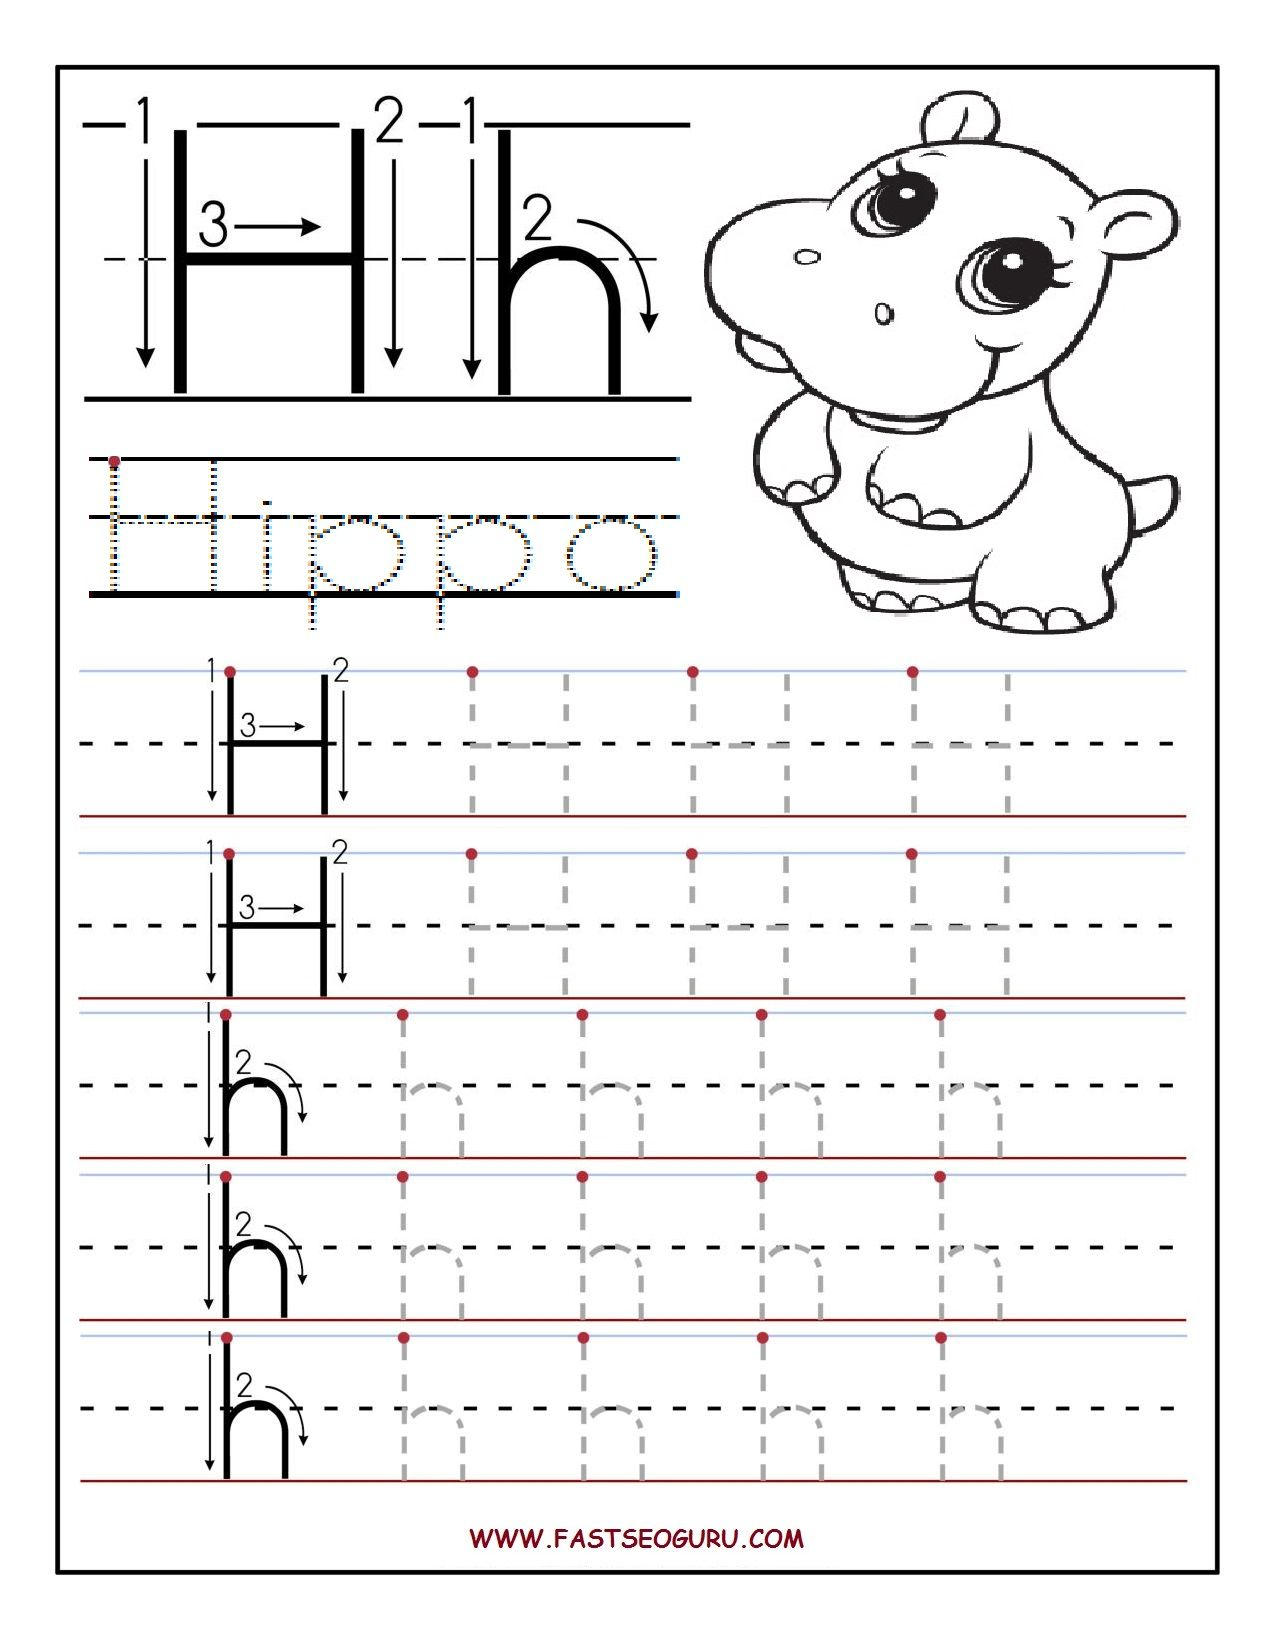 Printable letter H tracing worksheets for preschool | Projects ...